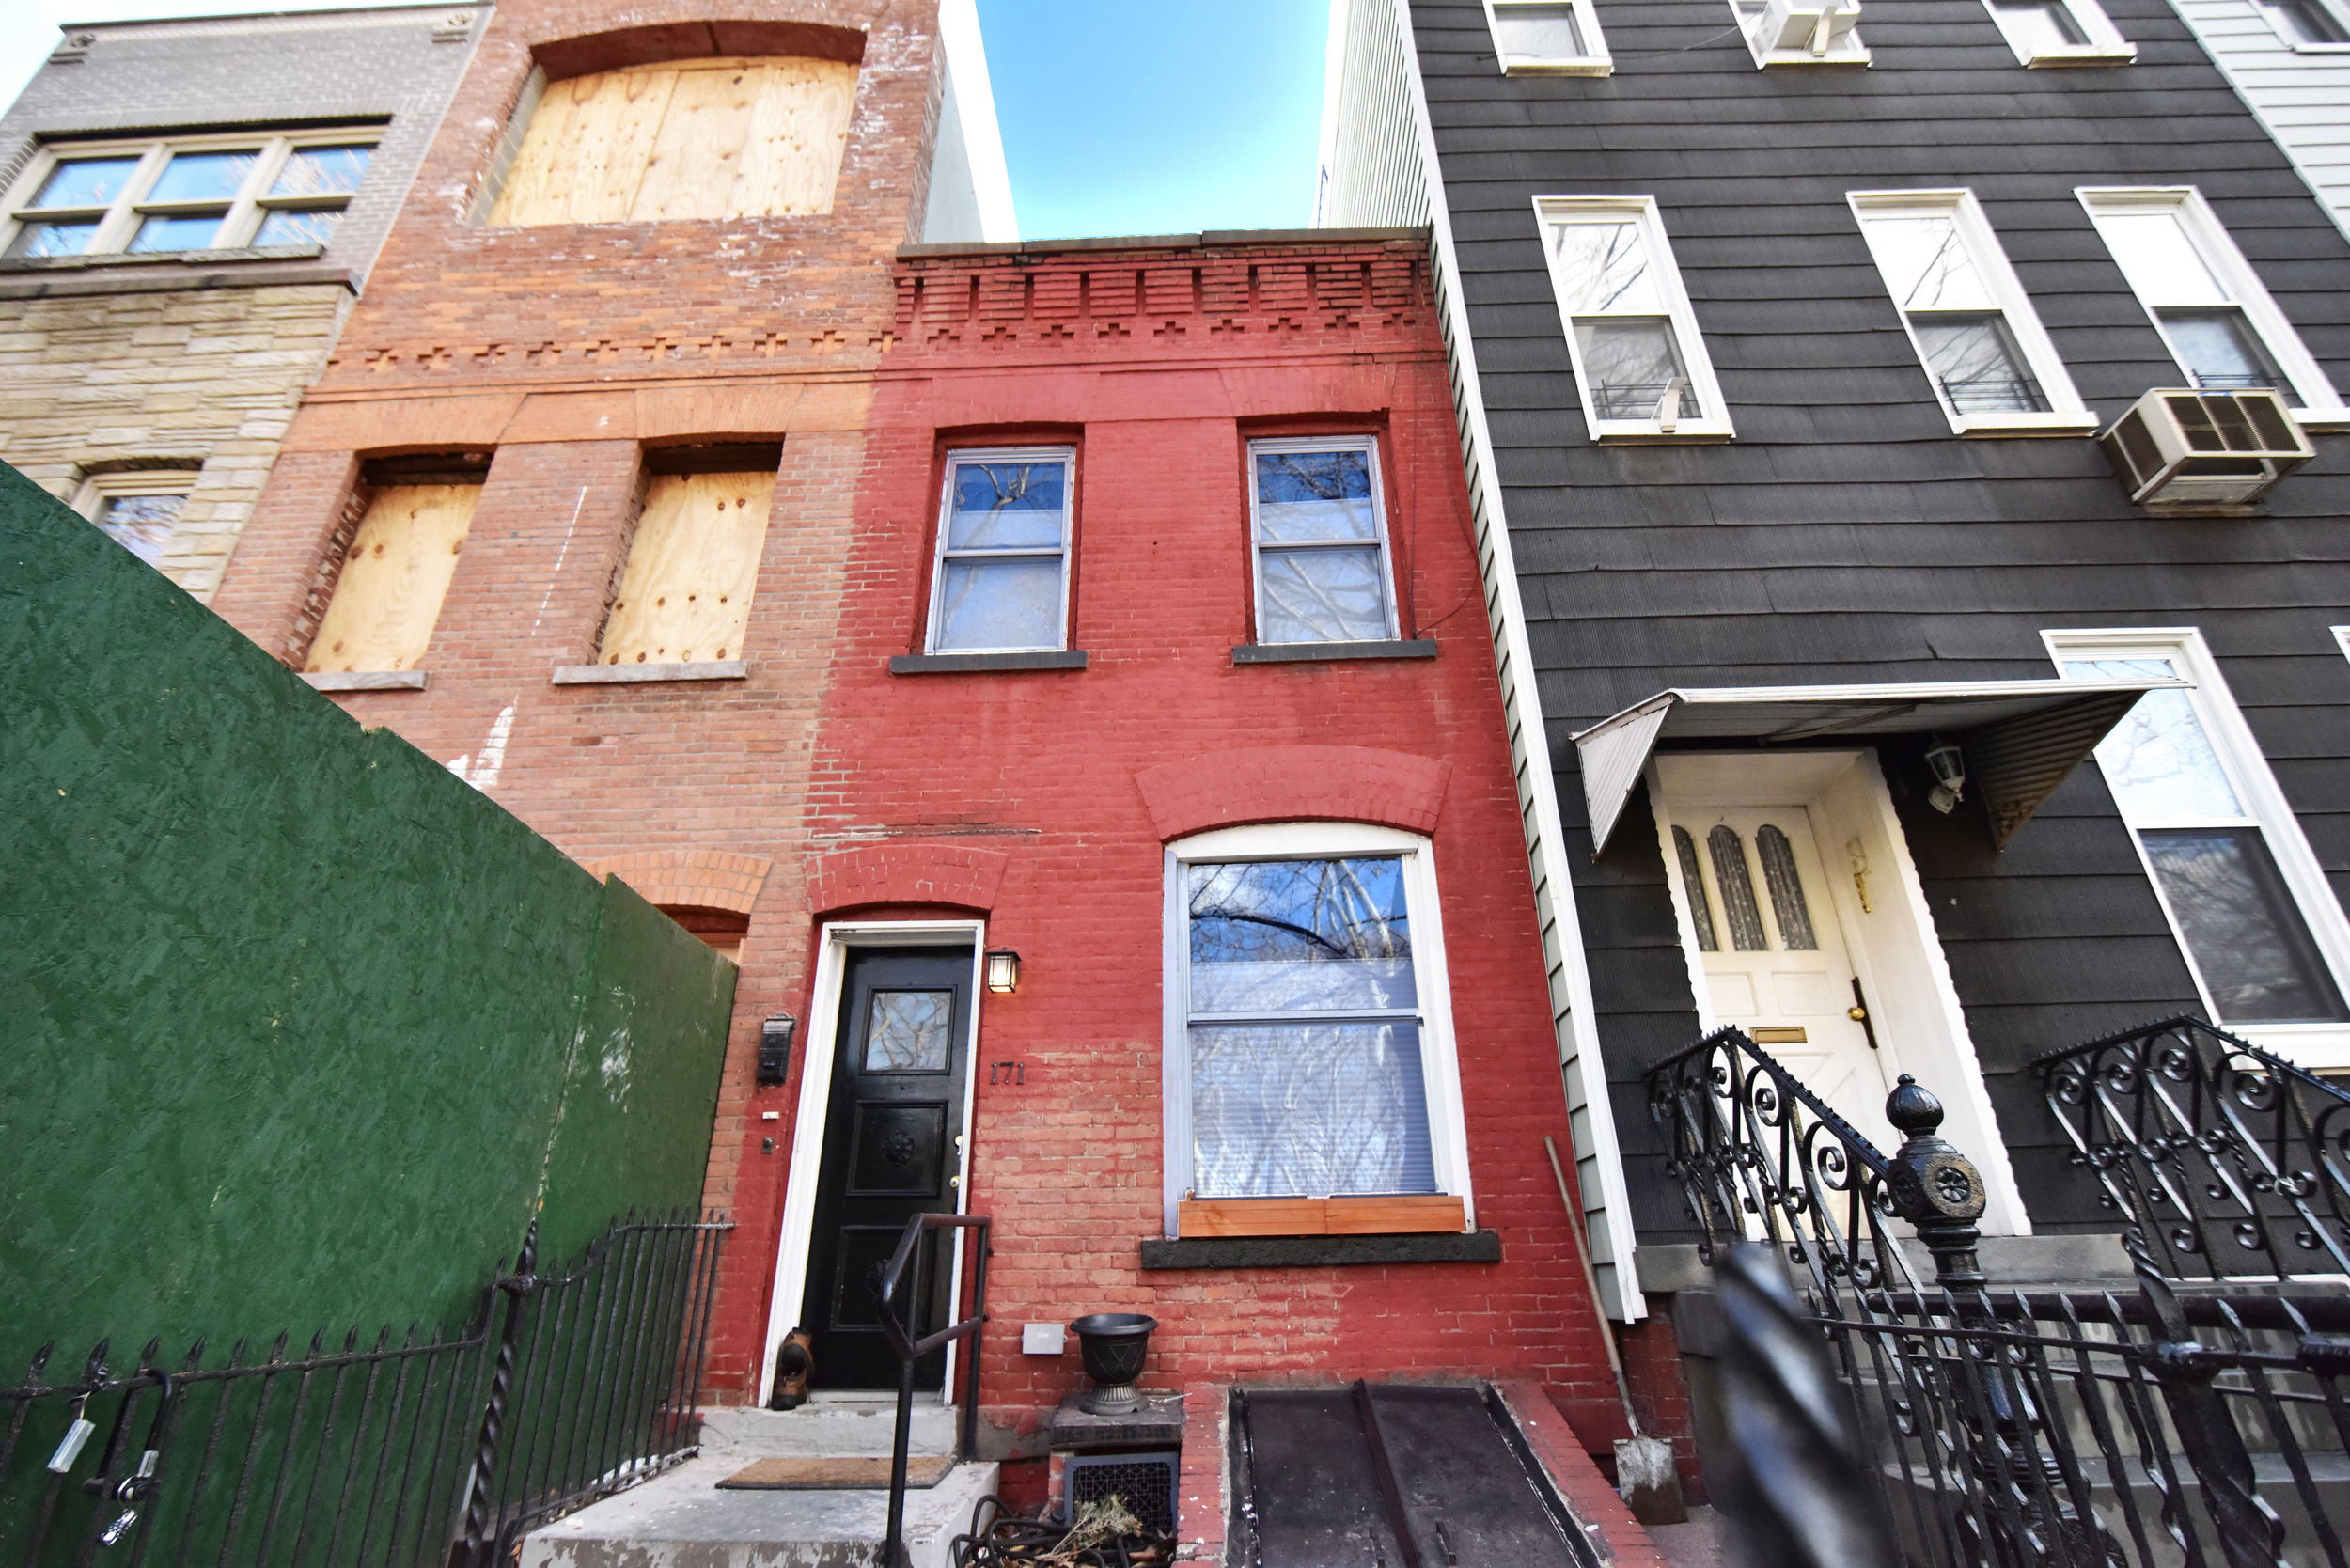 Sold | Greenpoint | Single Fam | 1,300,000